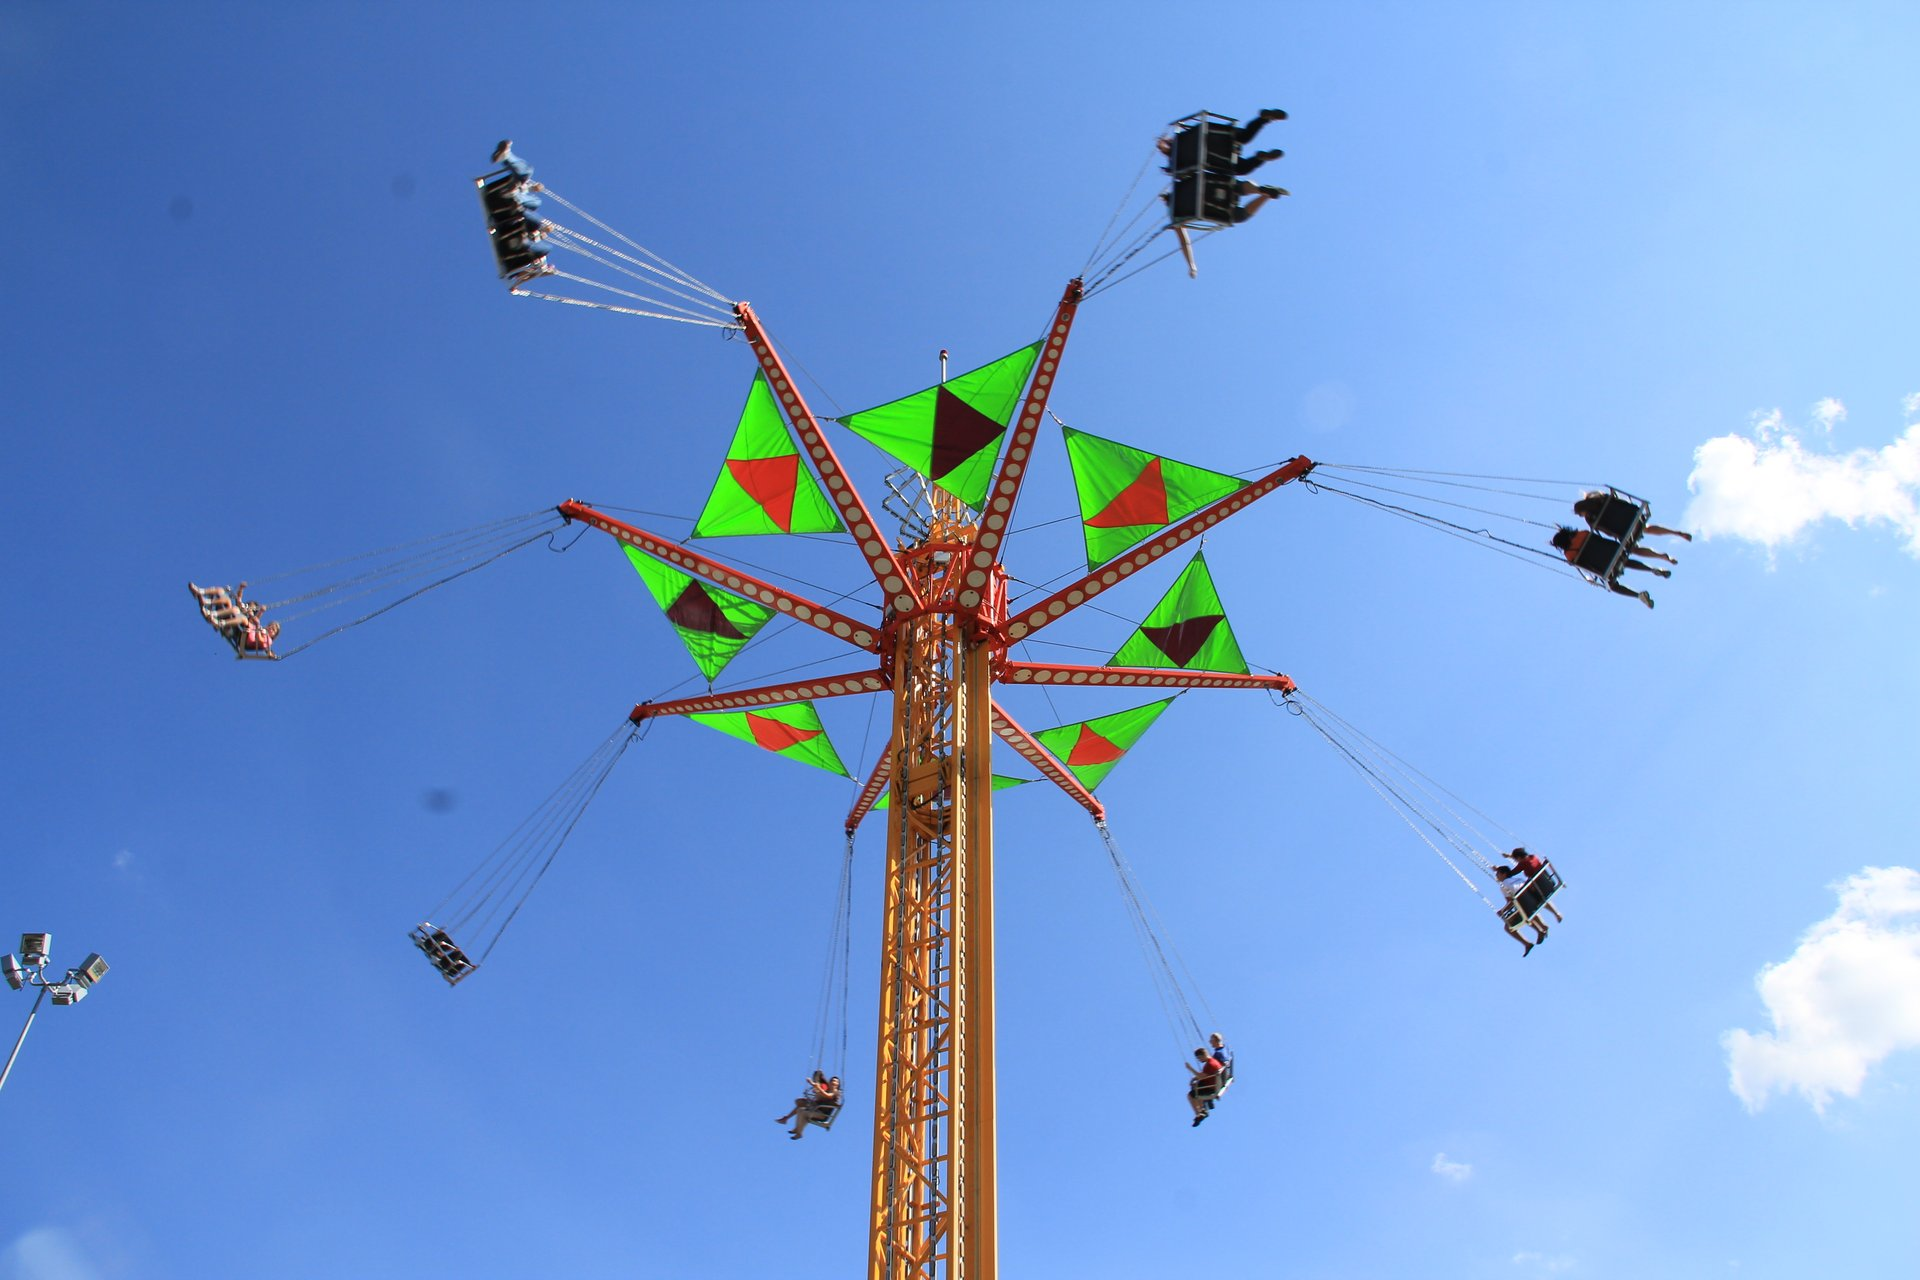 State Fair of Virginia in Virginia - Best Season 2020